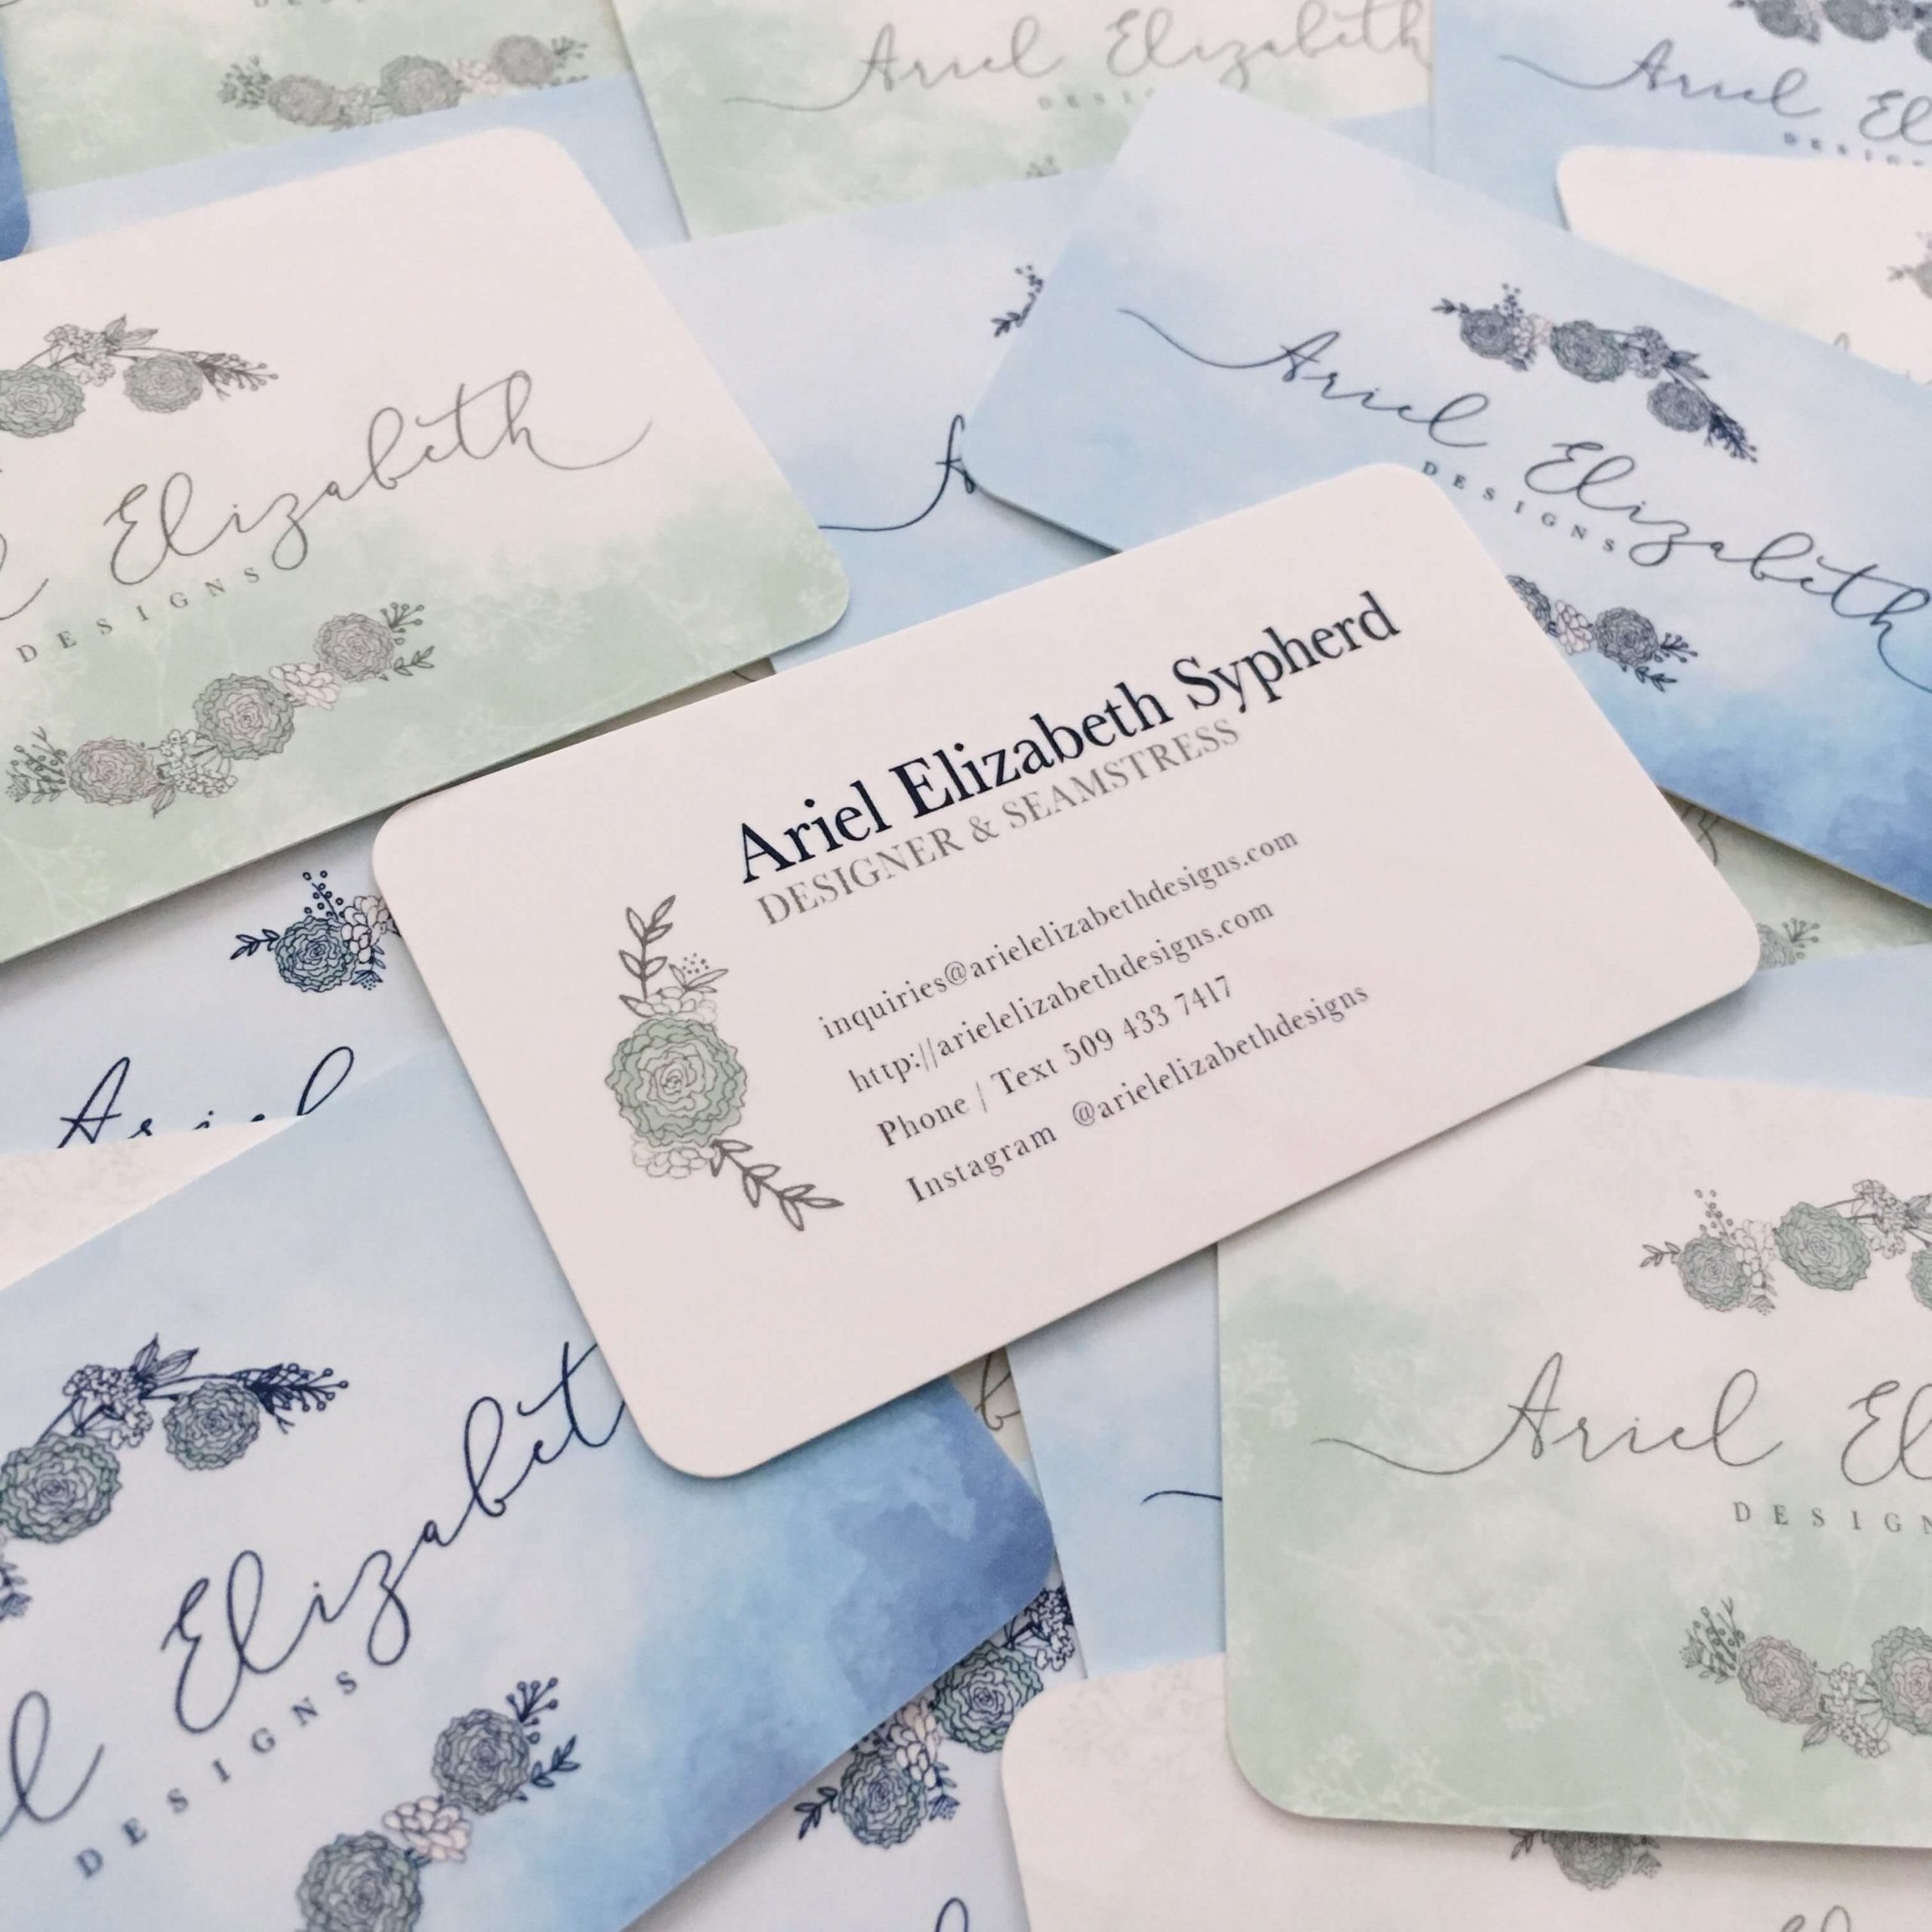 Actual business cards for Ariel Elizabeth Designs, featuring two different back sides in different colors, and the front side with Ariel's information.